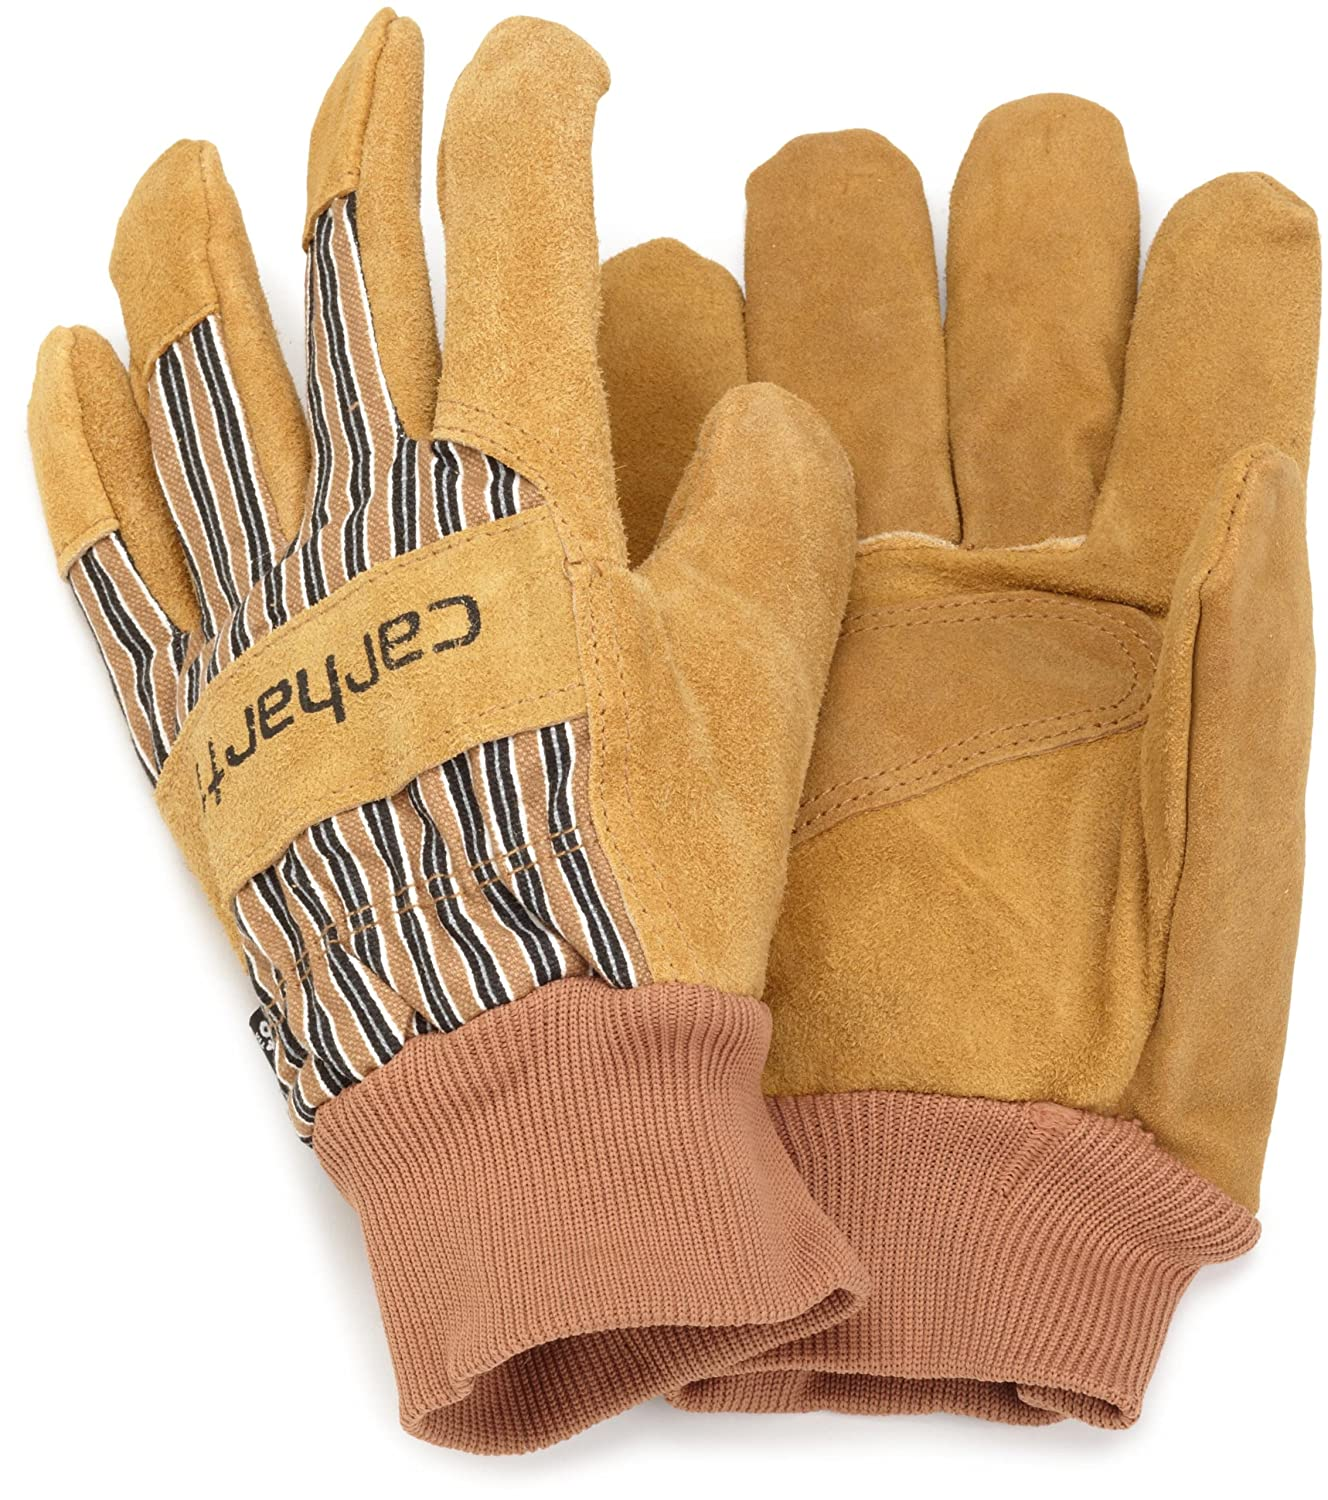 Carhartt Men's Insulated Suede Work Glove with Knit Cuff Carhartt Men's Gloves A512